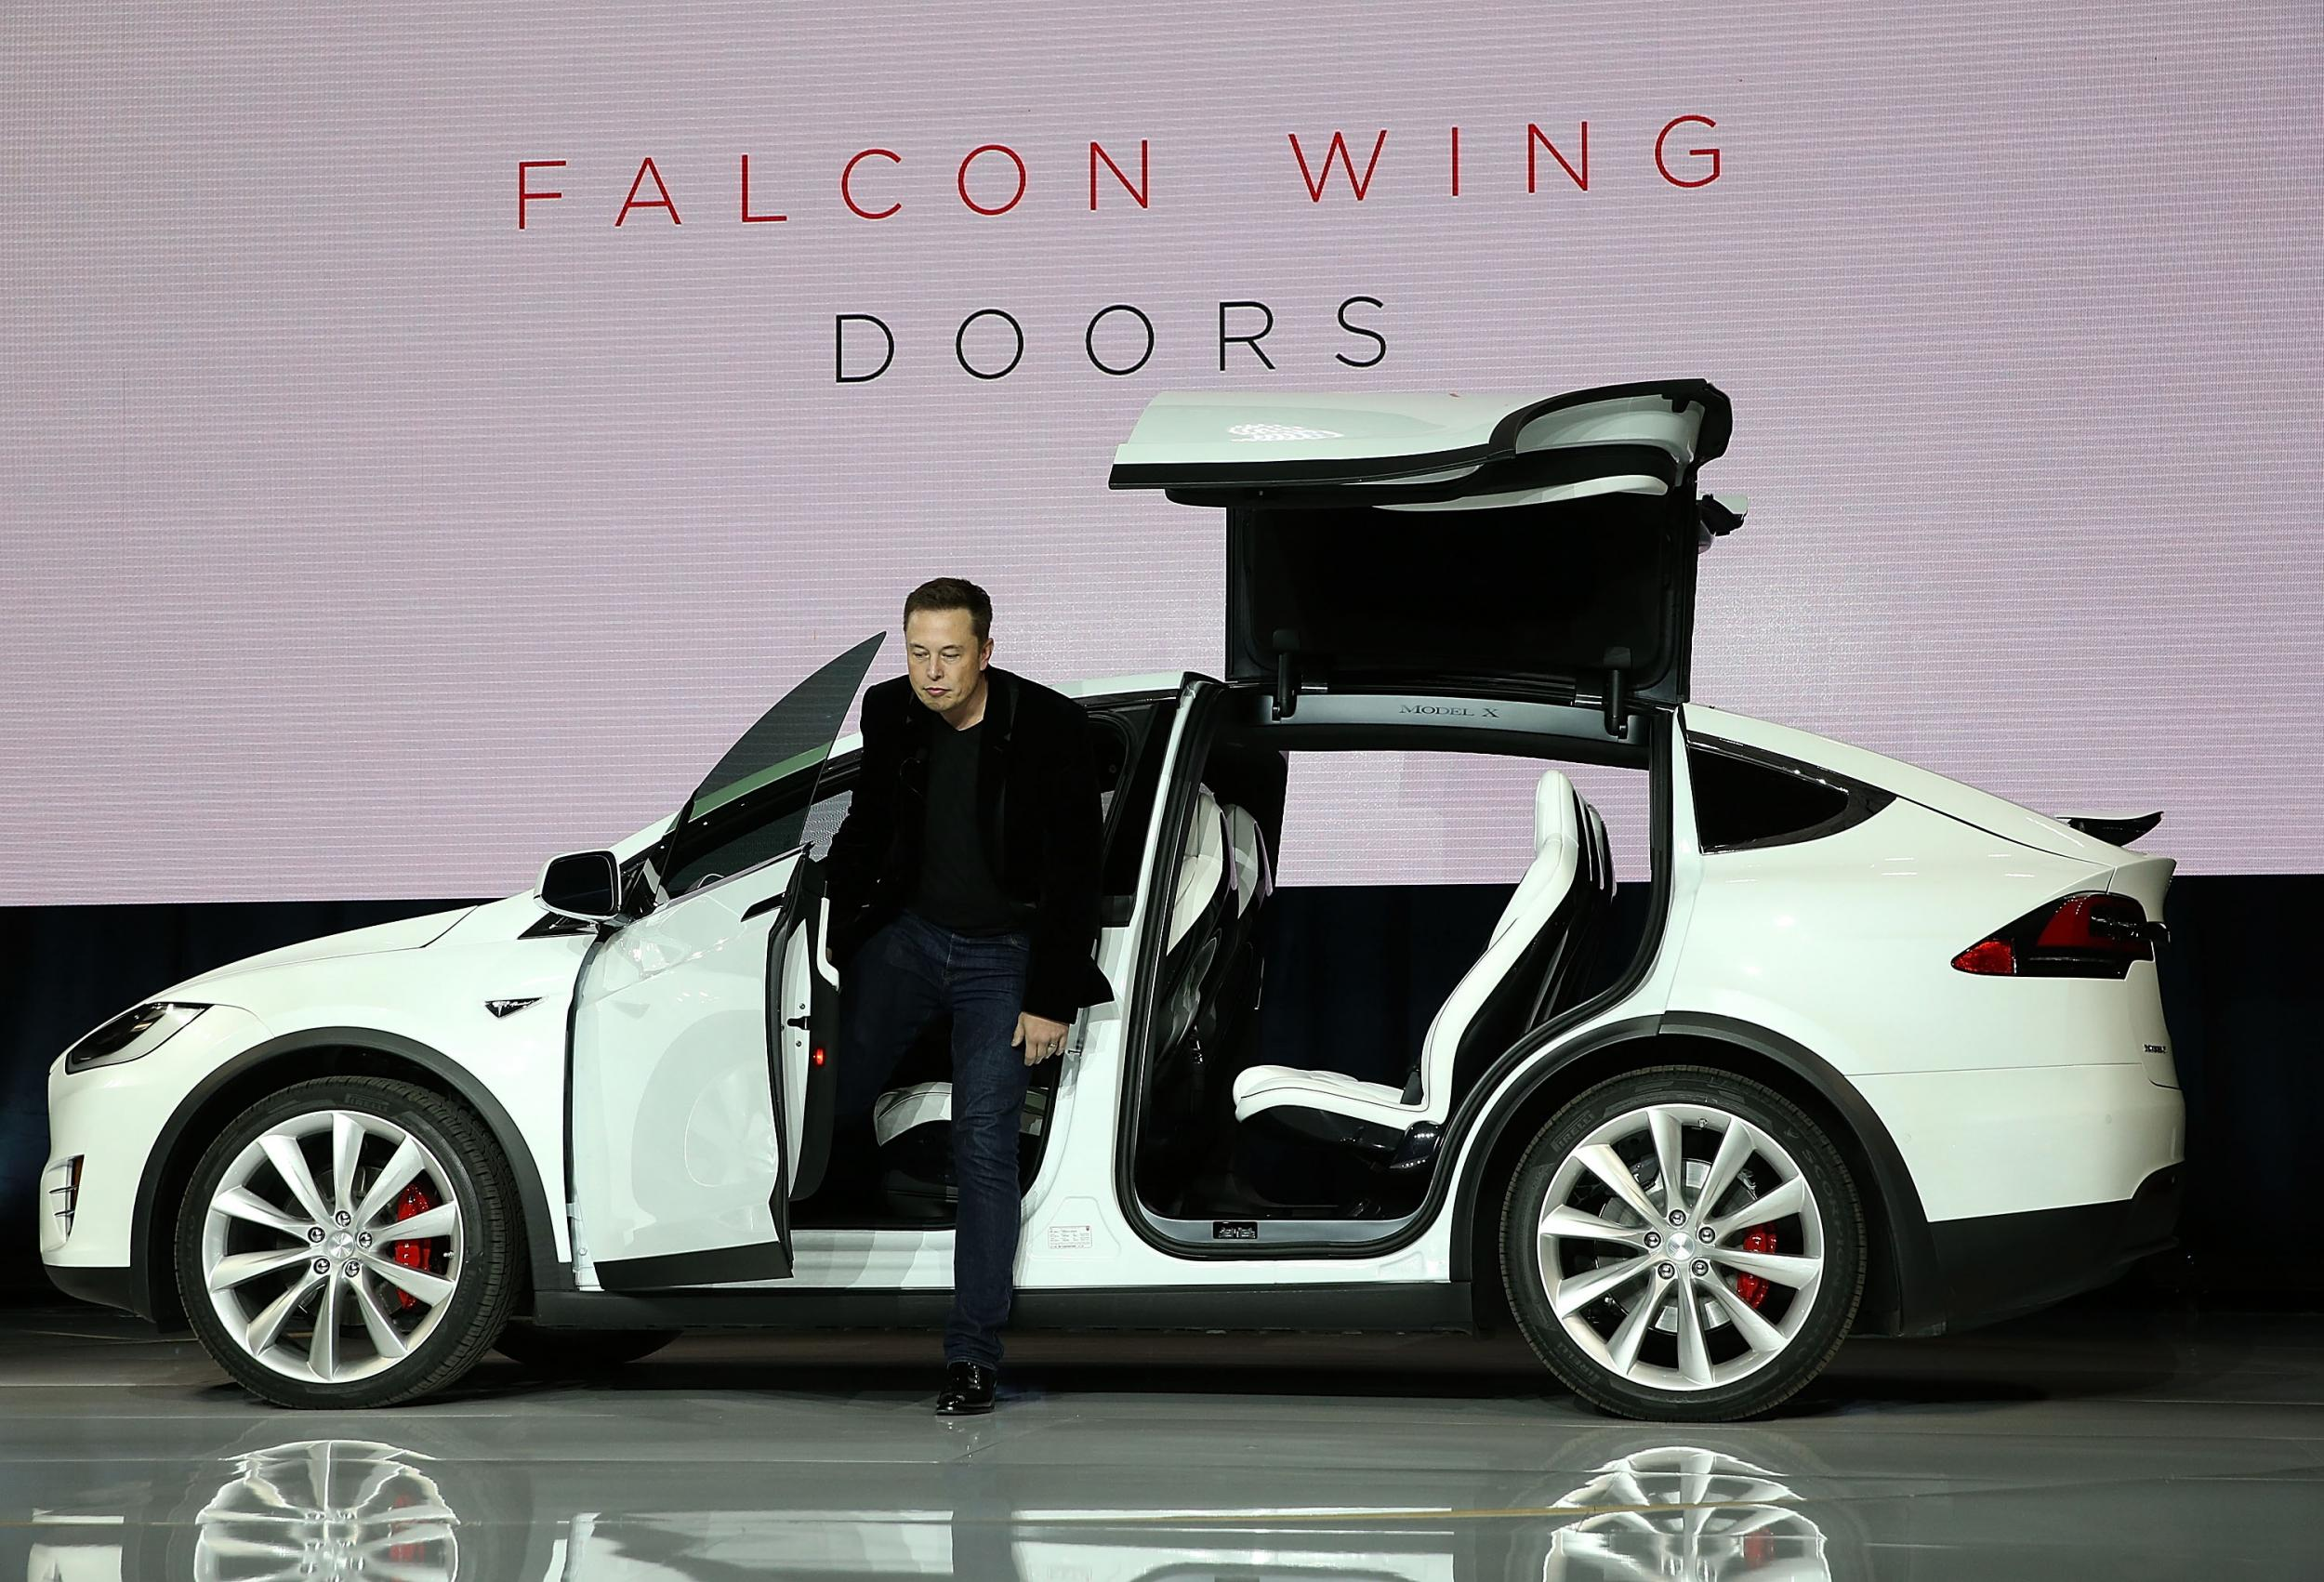 Teething problems with the Model X are causing major headaches for some users & Tesla Model X owners complain of doors that wonu0027t open and other ...